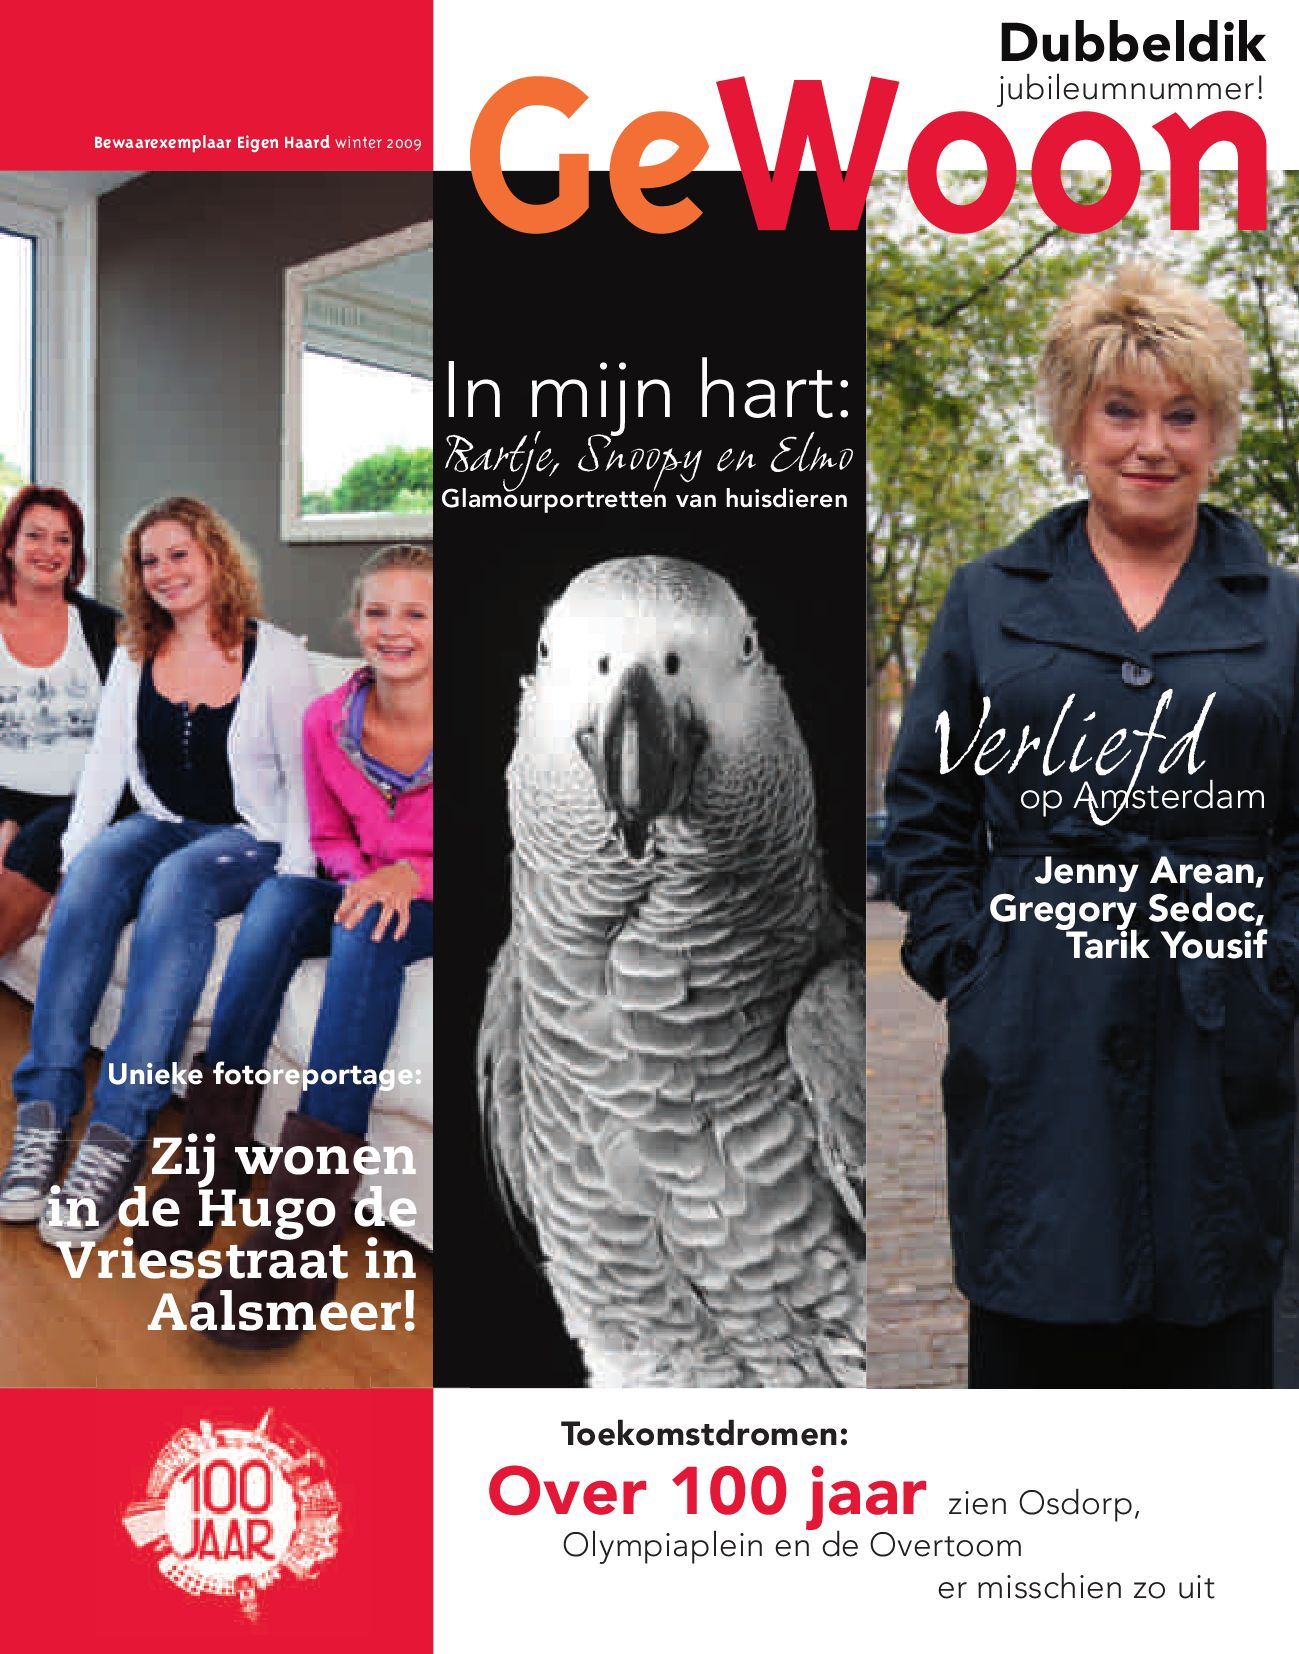 Gewoon nr. 4 2009 by scripta communicatie b.v.   issuu